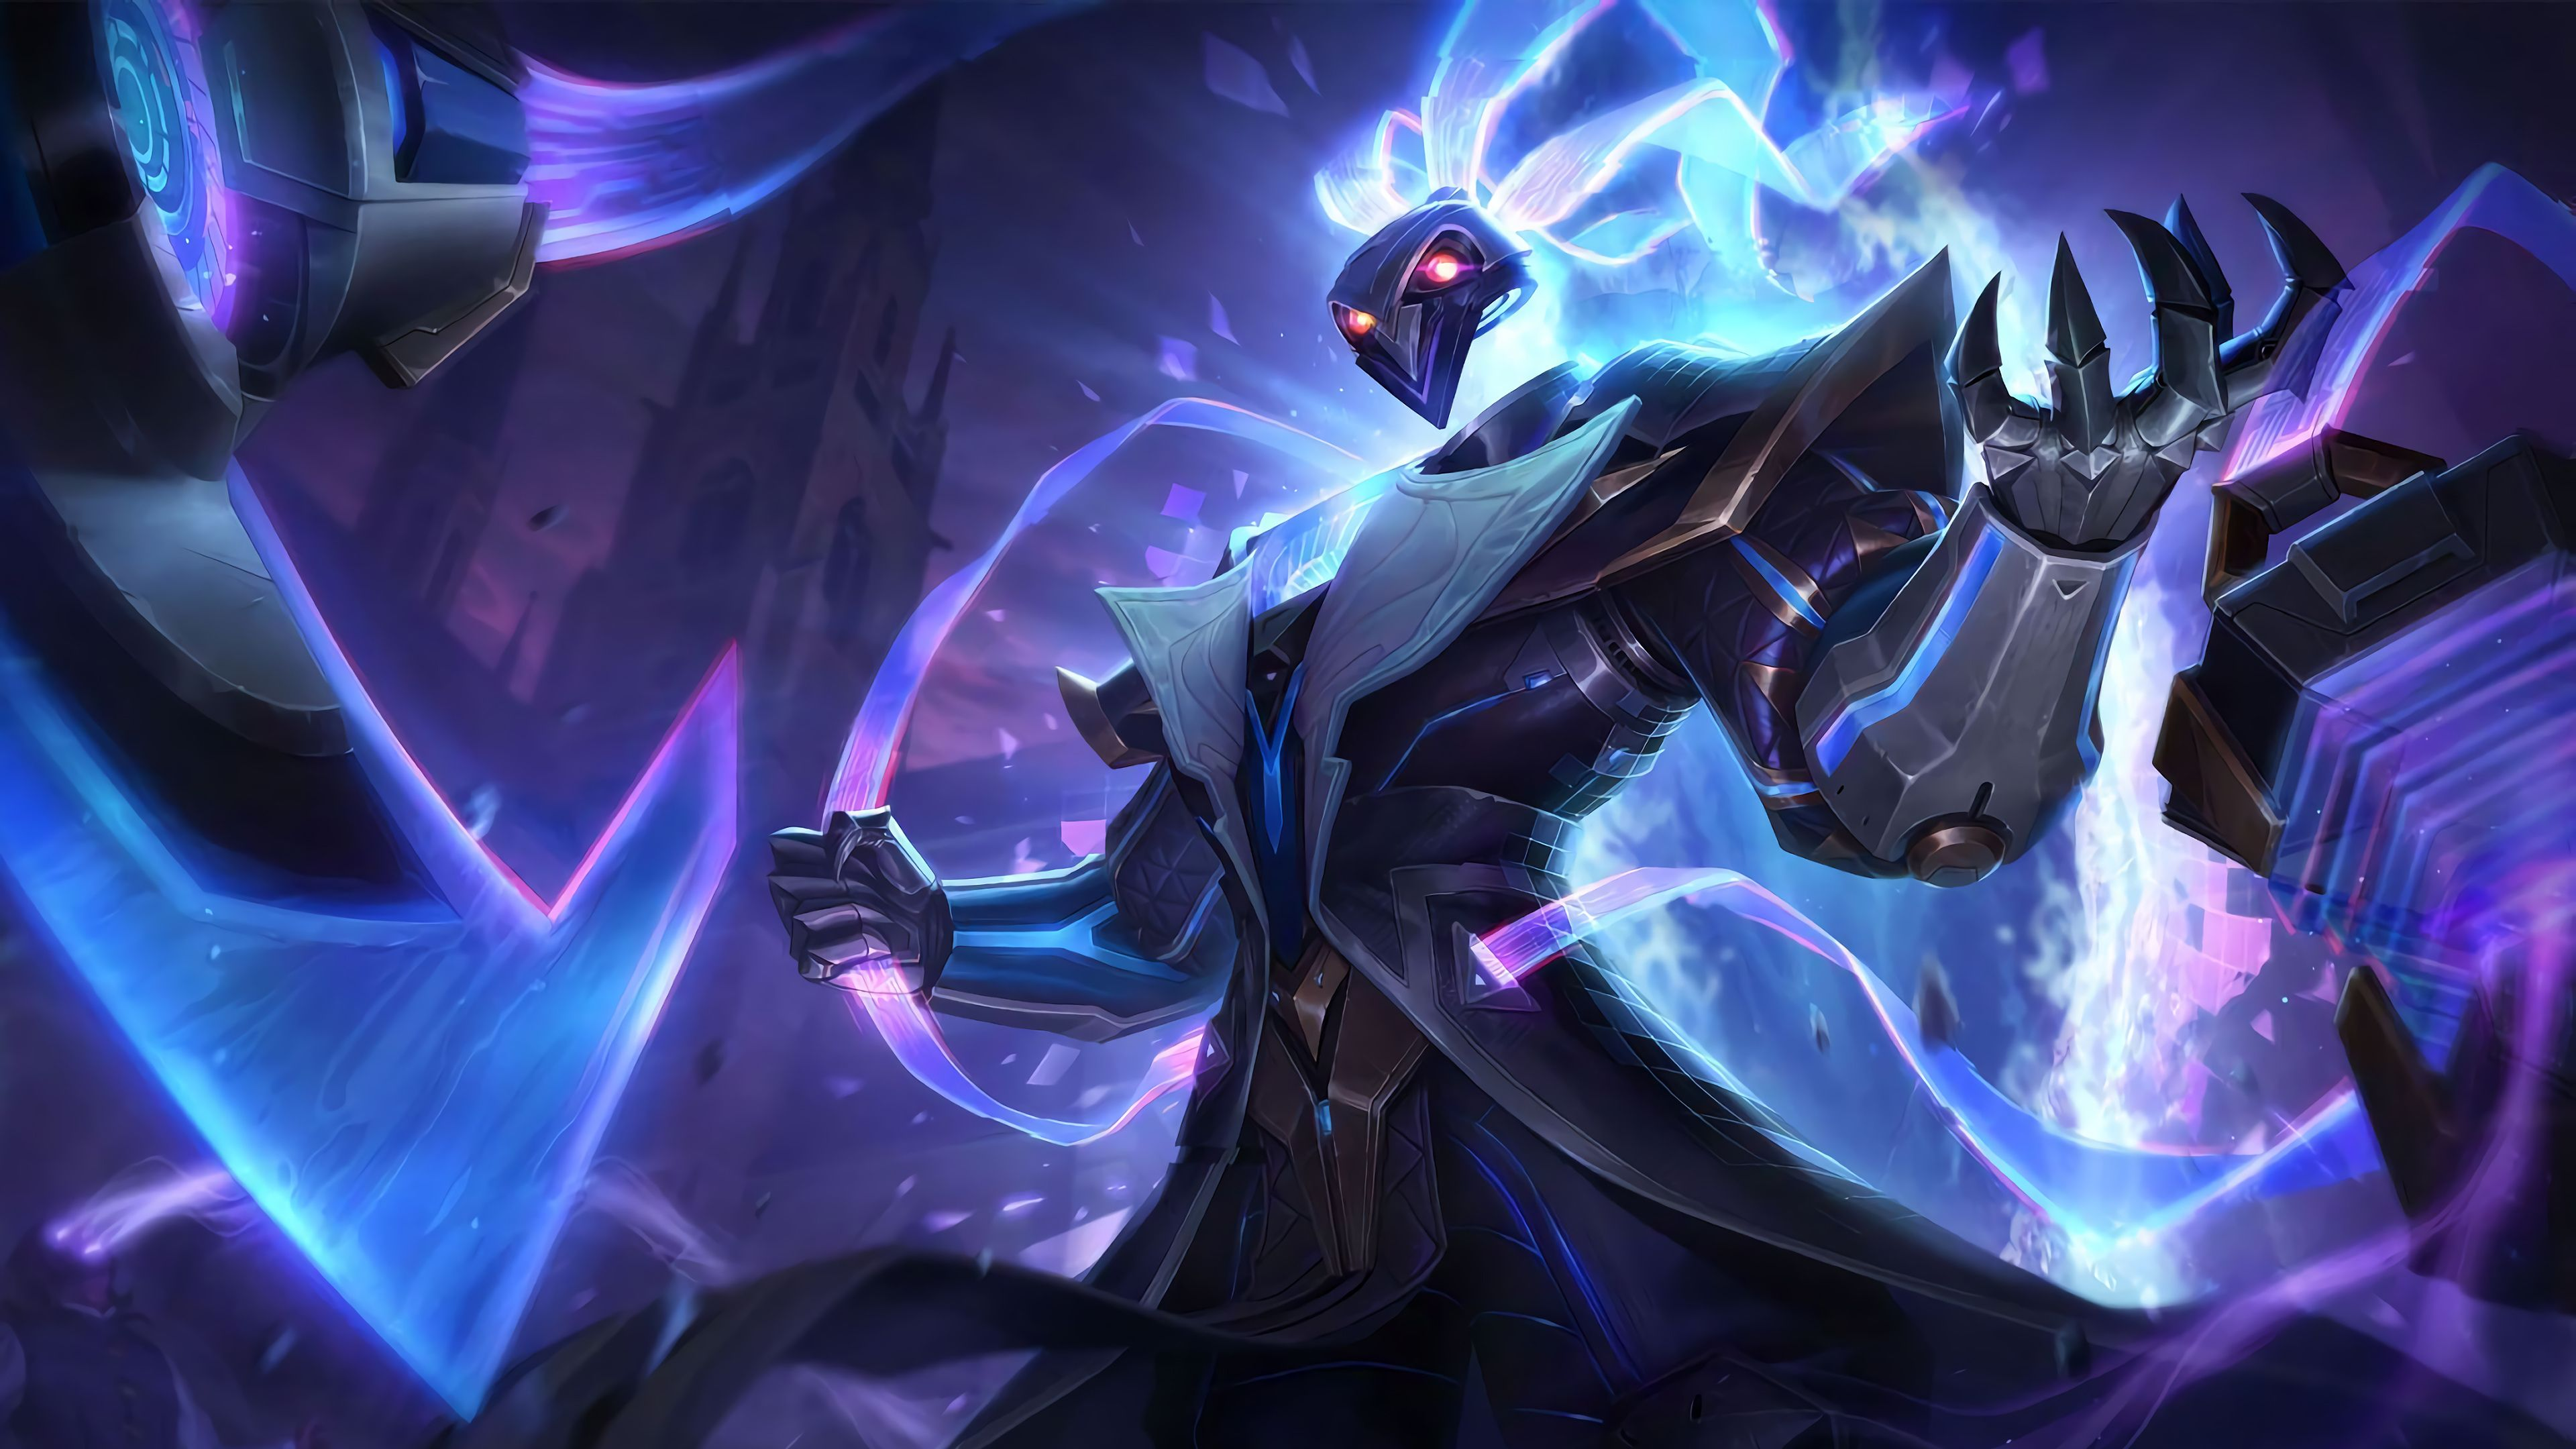 Pin By 月的男人 On 游戏 League Of Legends Characters League Of Legends Concept Art Characters